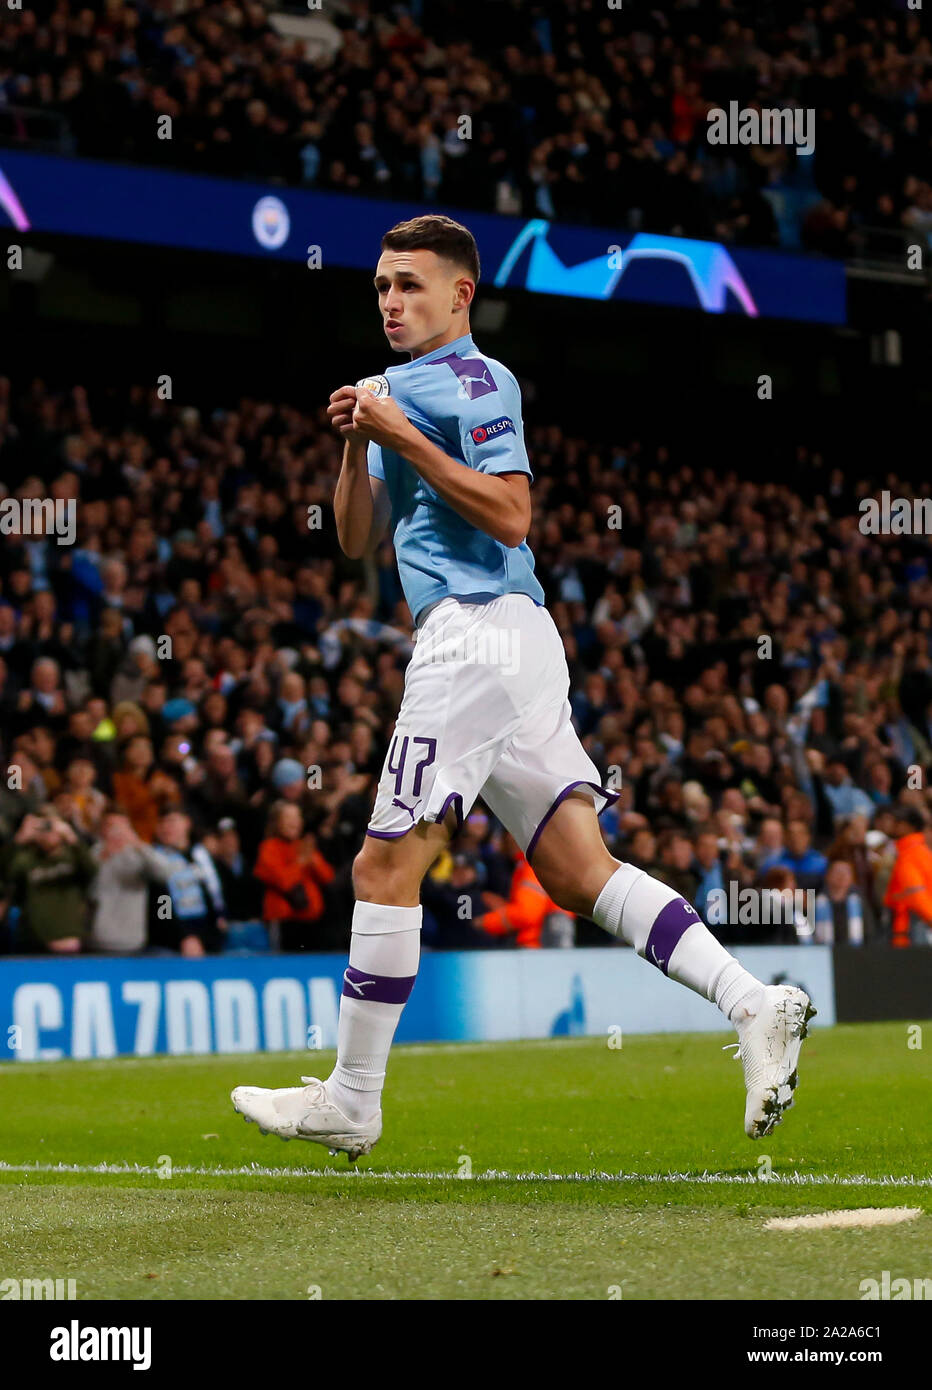 Manchester. 1st Oct, 2019. Manchester City's Phil Foden celebrates scoring during the UEFA Champions League Group C match between Manchester City and Dinamo Zagreb in Manchester, Britain on Oct. 1, 2019. Credit: Han Yan/Xinhua/Alamy Live News Stock Photo